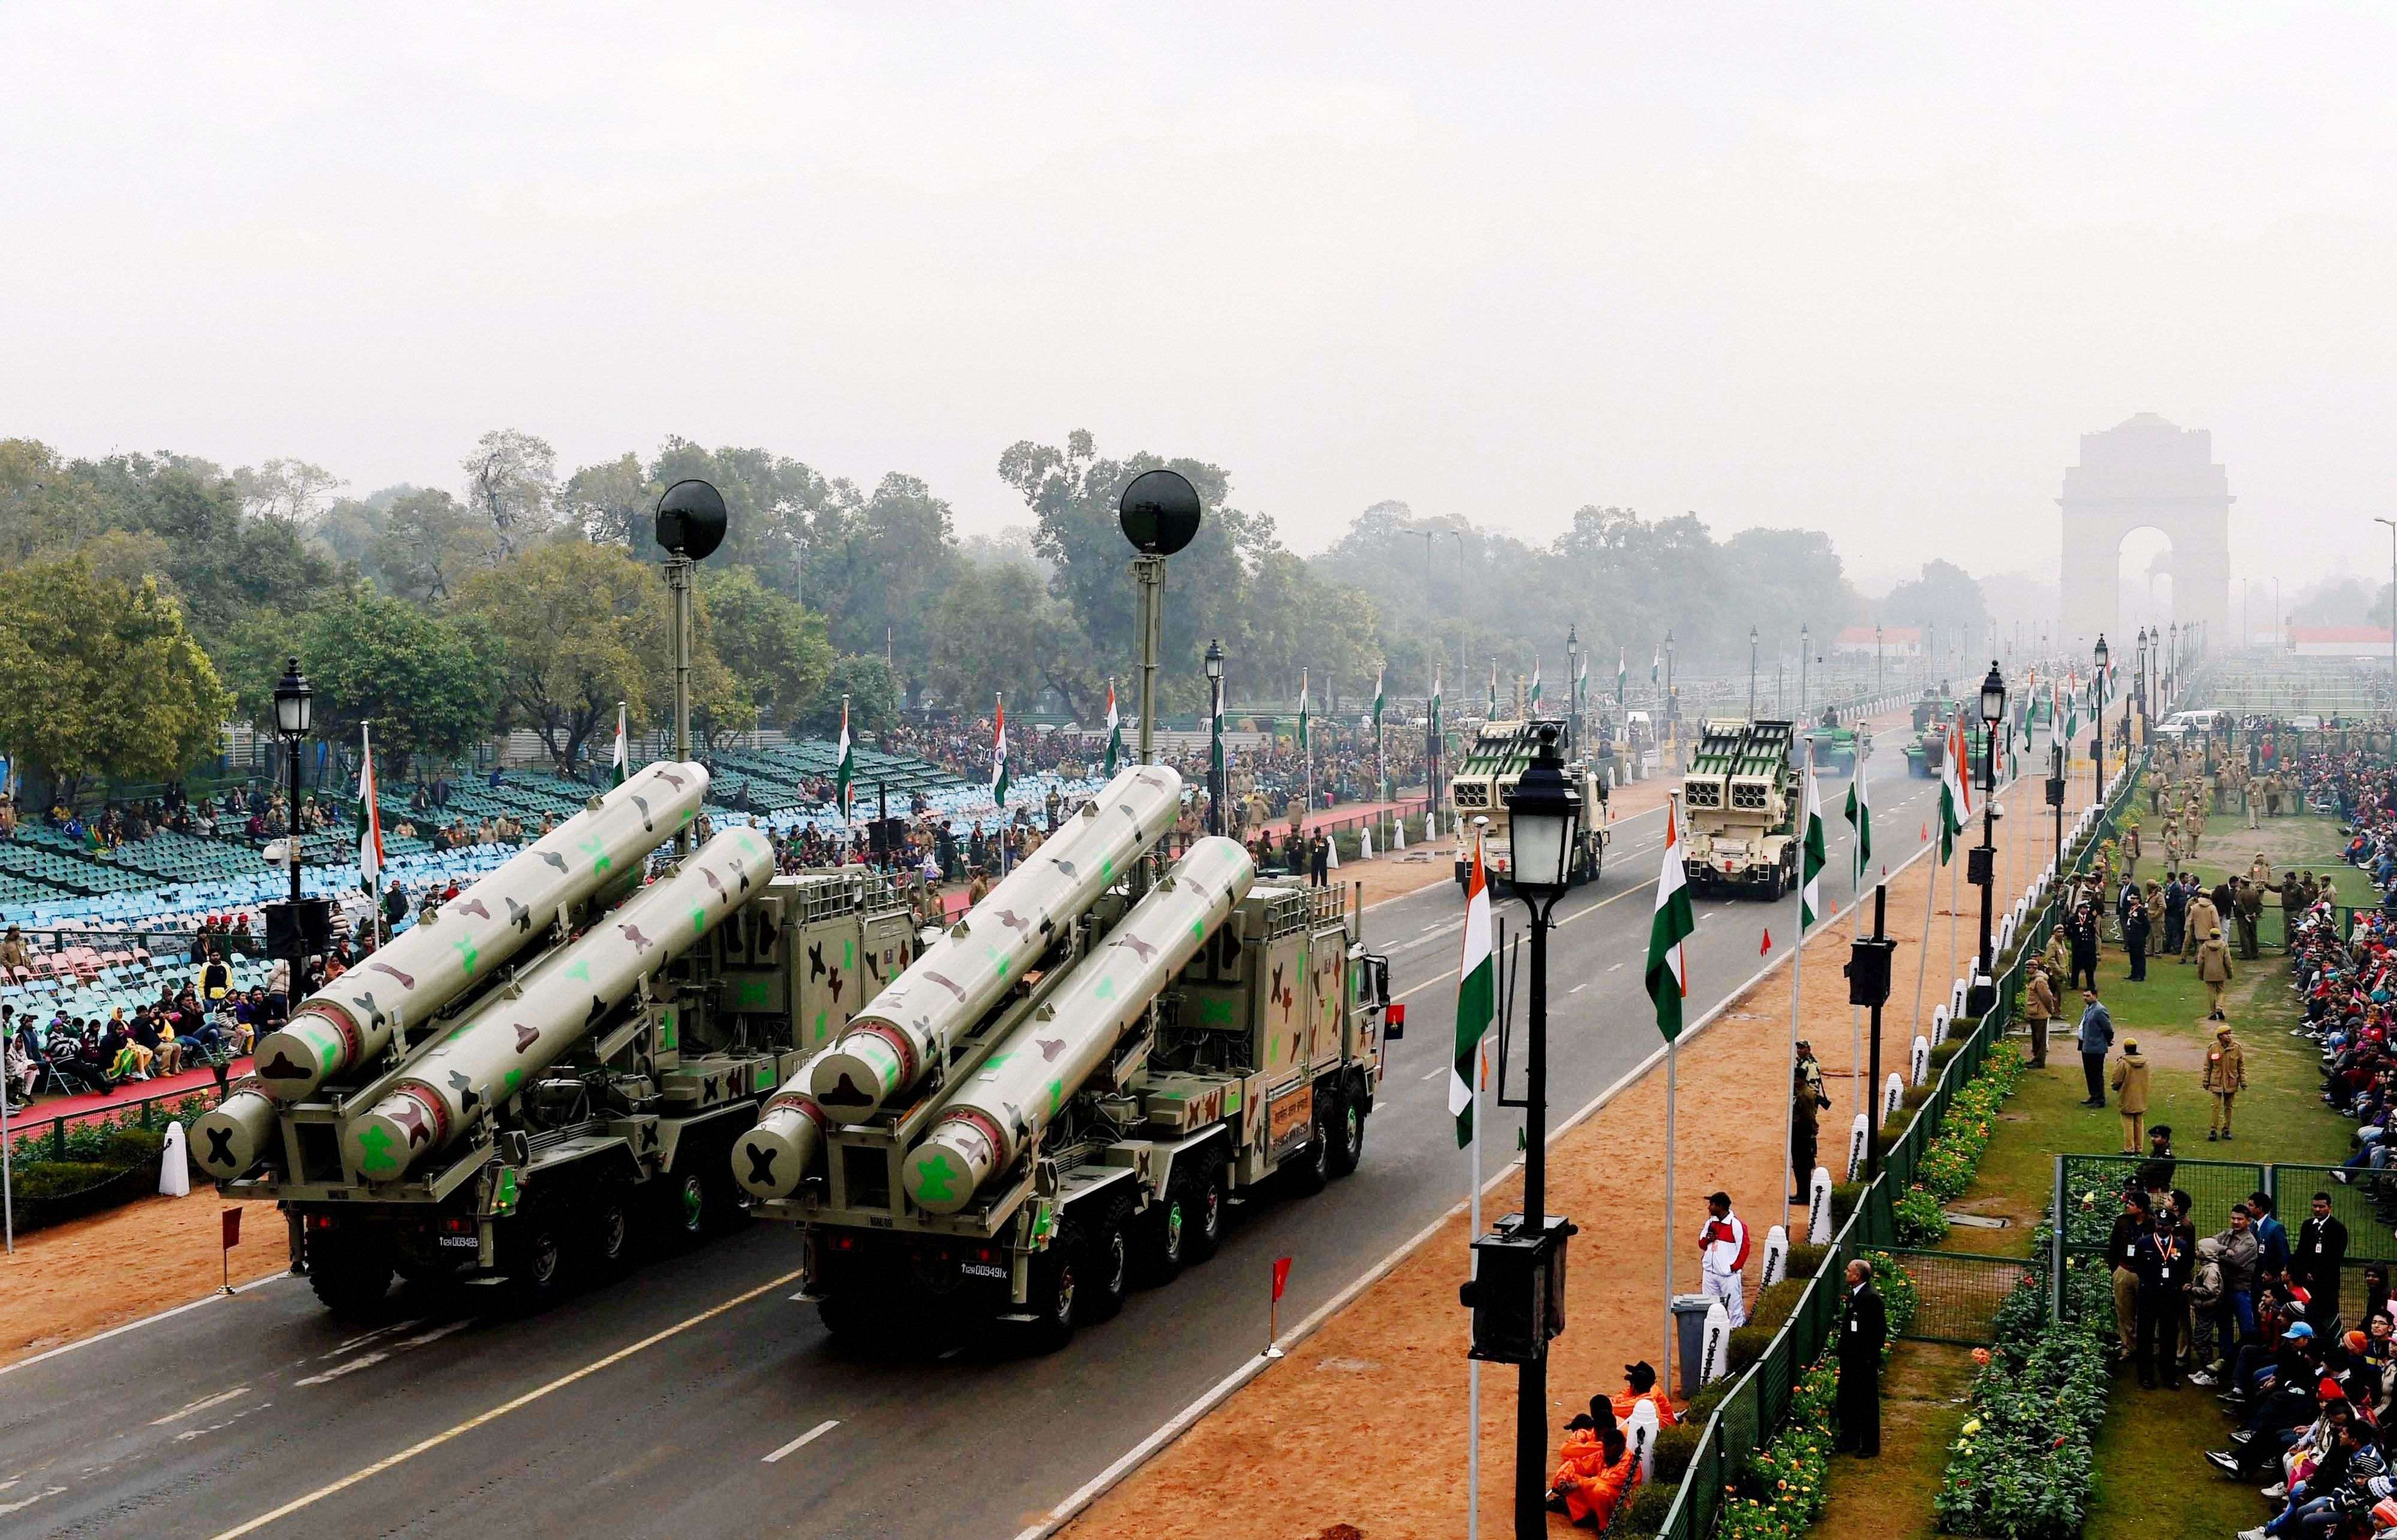 Brahmos weapon system move during the full dress rehearsal for the Republic Day parade at Rajpath in New Delhi. (PTI photo by Atul Yadav)